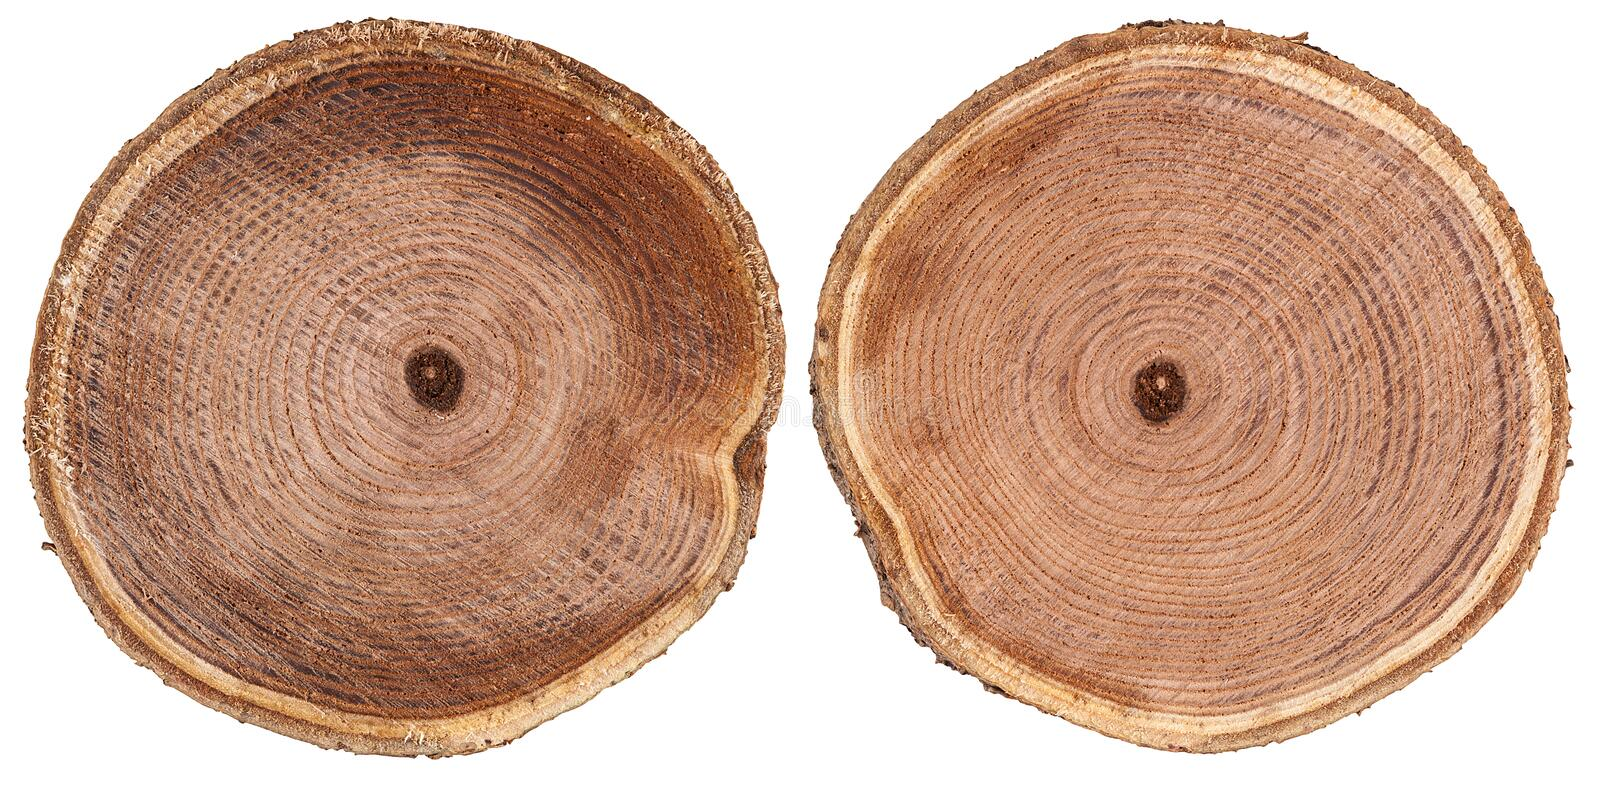 Round cut wood background royalty free stock photos